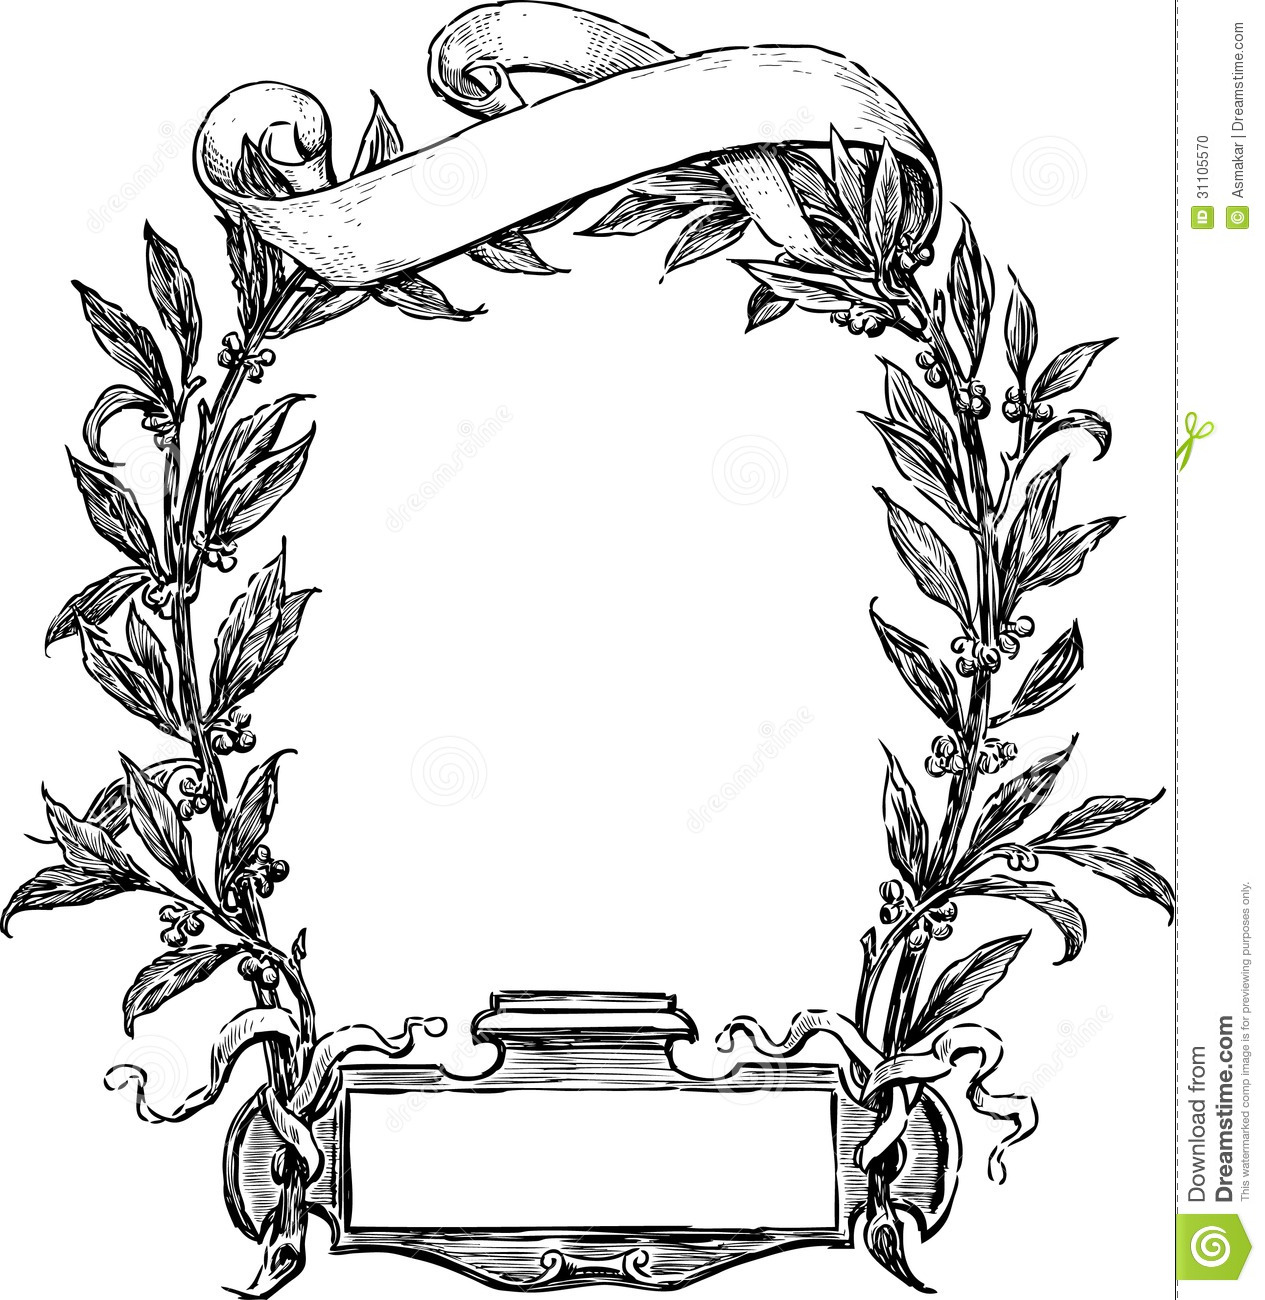 Frame Design Line Art : Frame of laurel and ribbon stock vector illustration